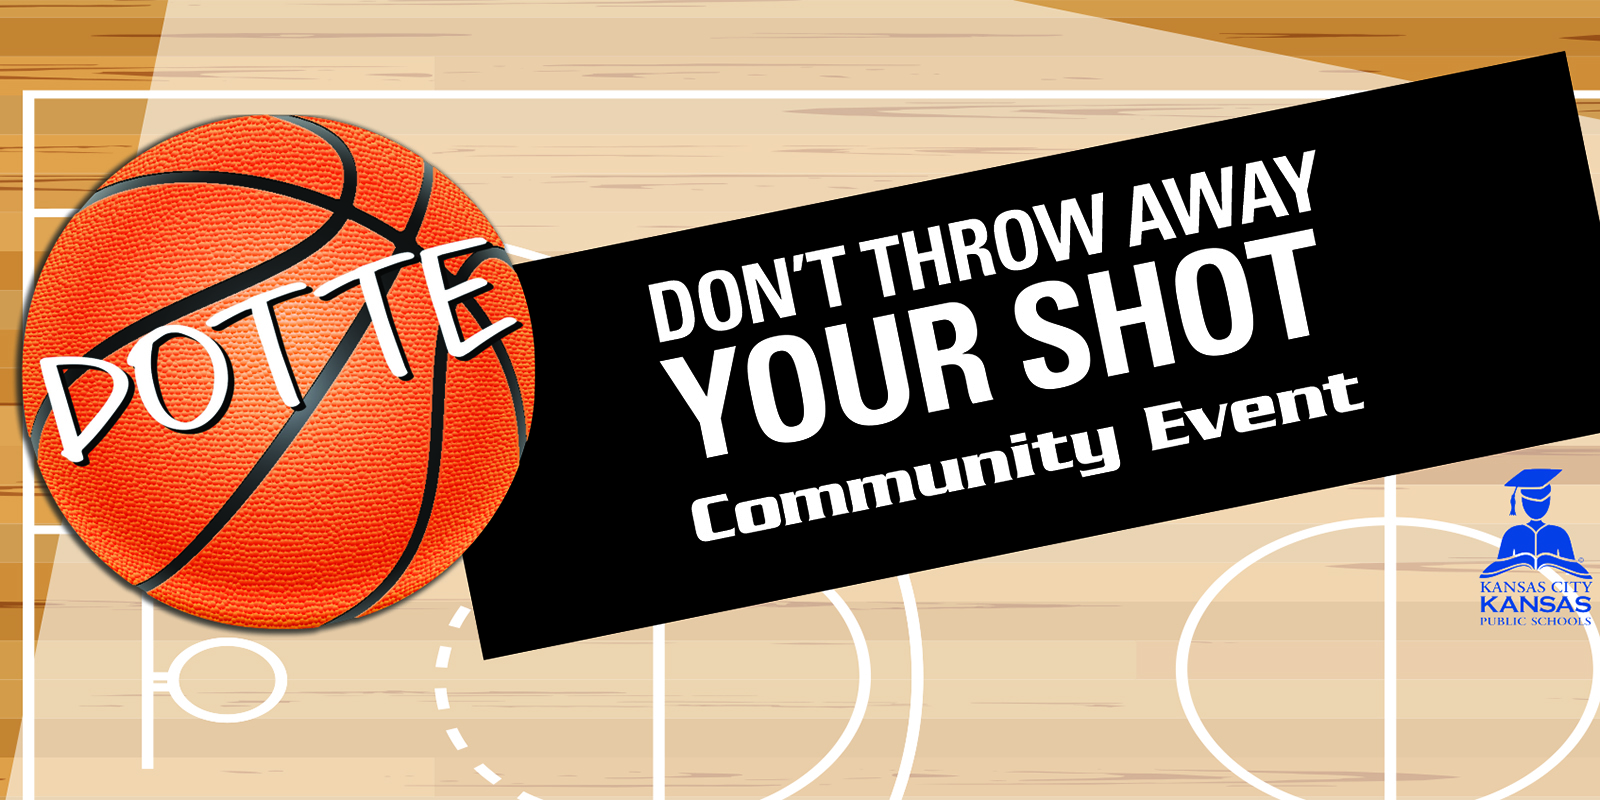 The 'Dotte Don't Throw Away Your Shot Community Event